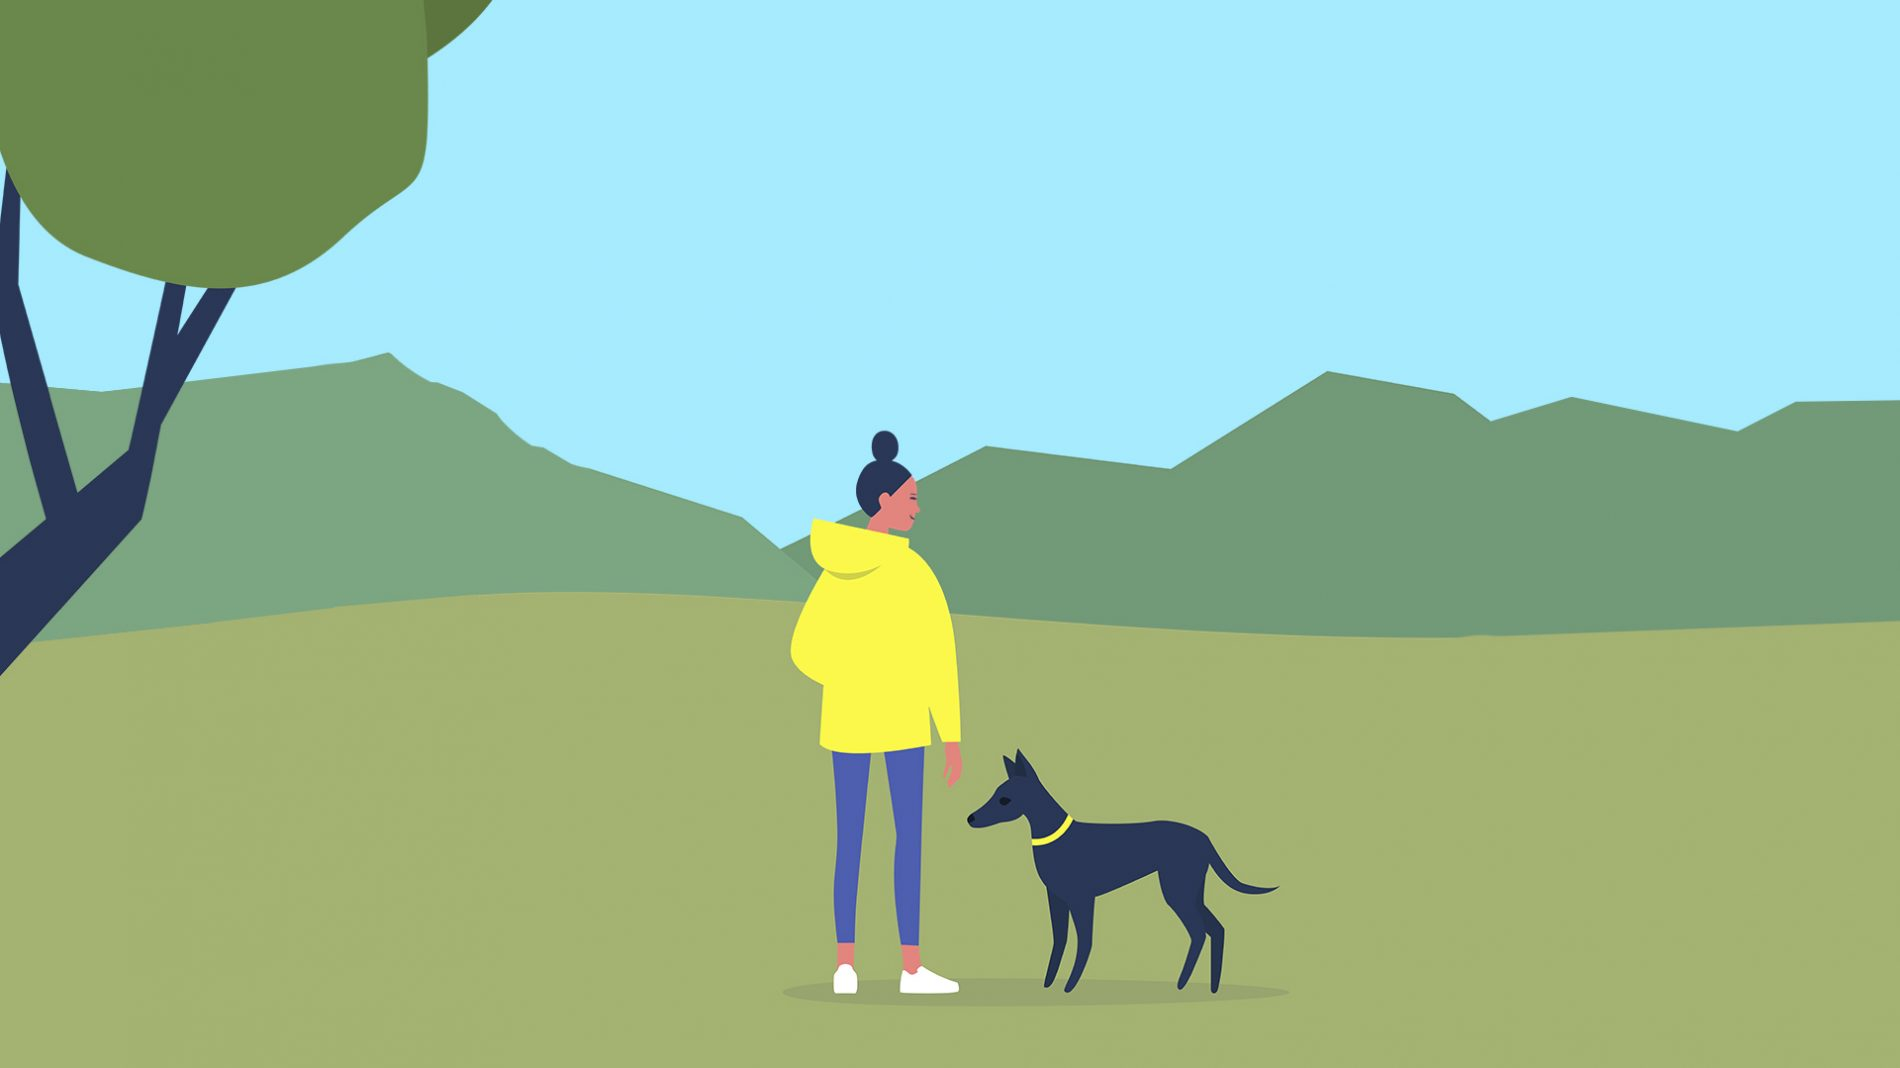 Illustration of a woman standing in a park with a dog